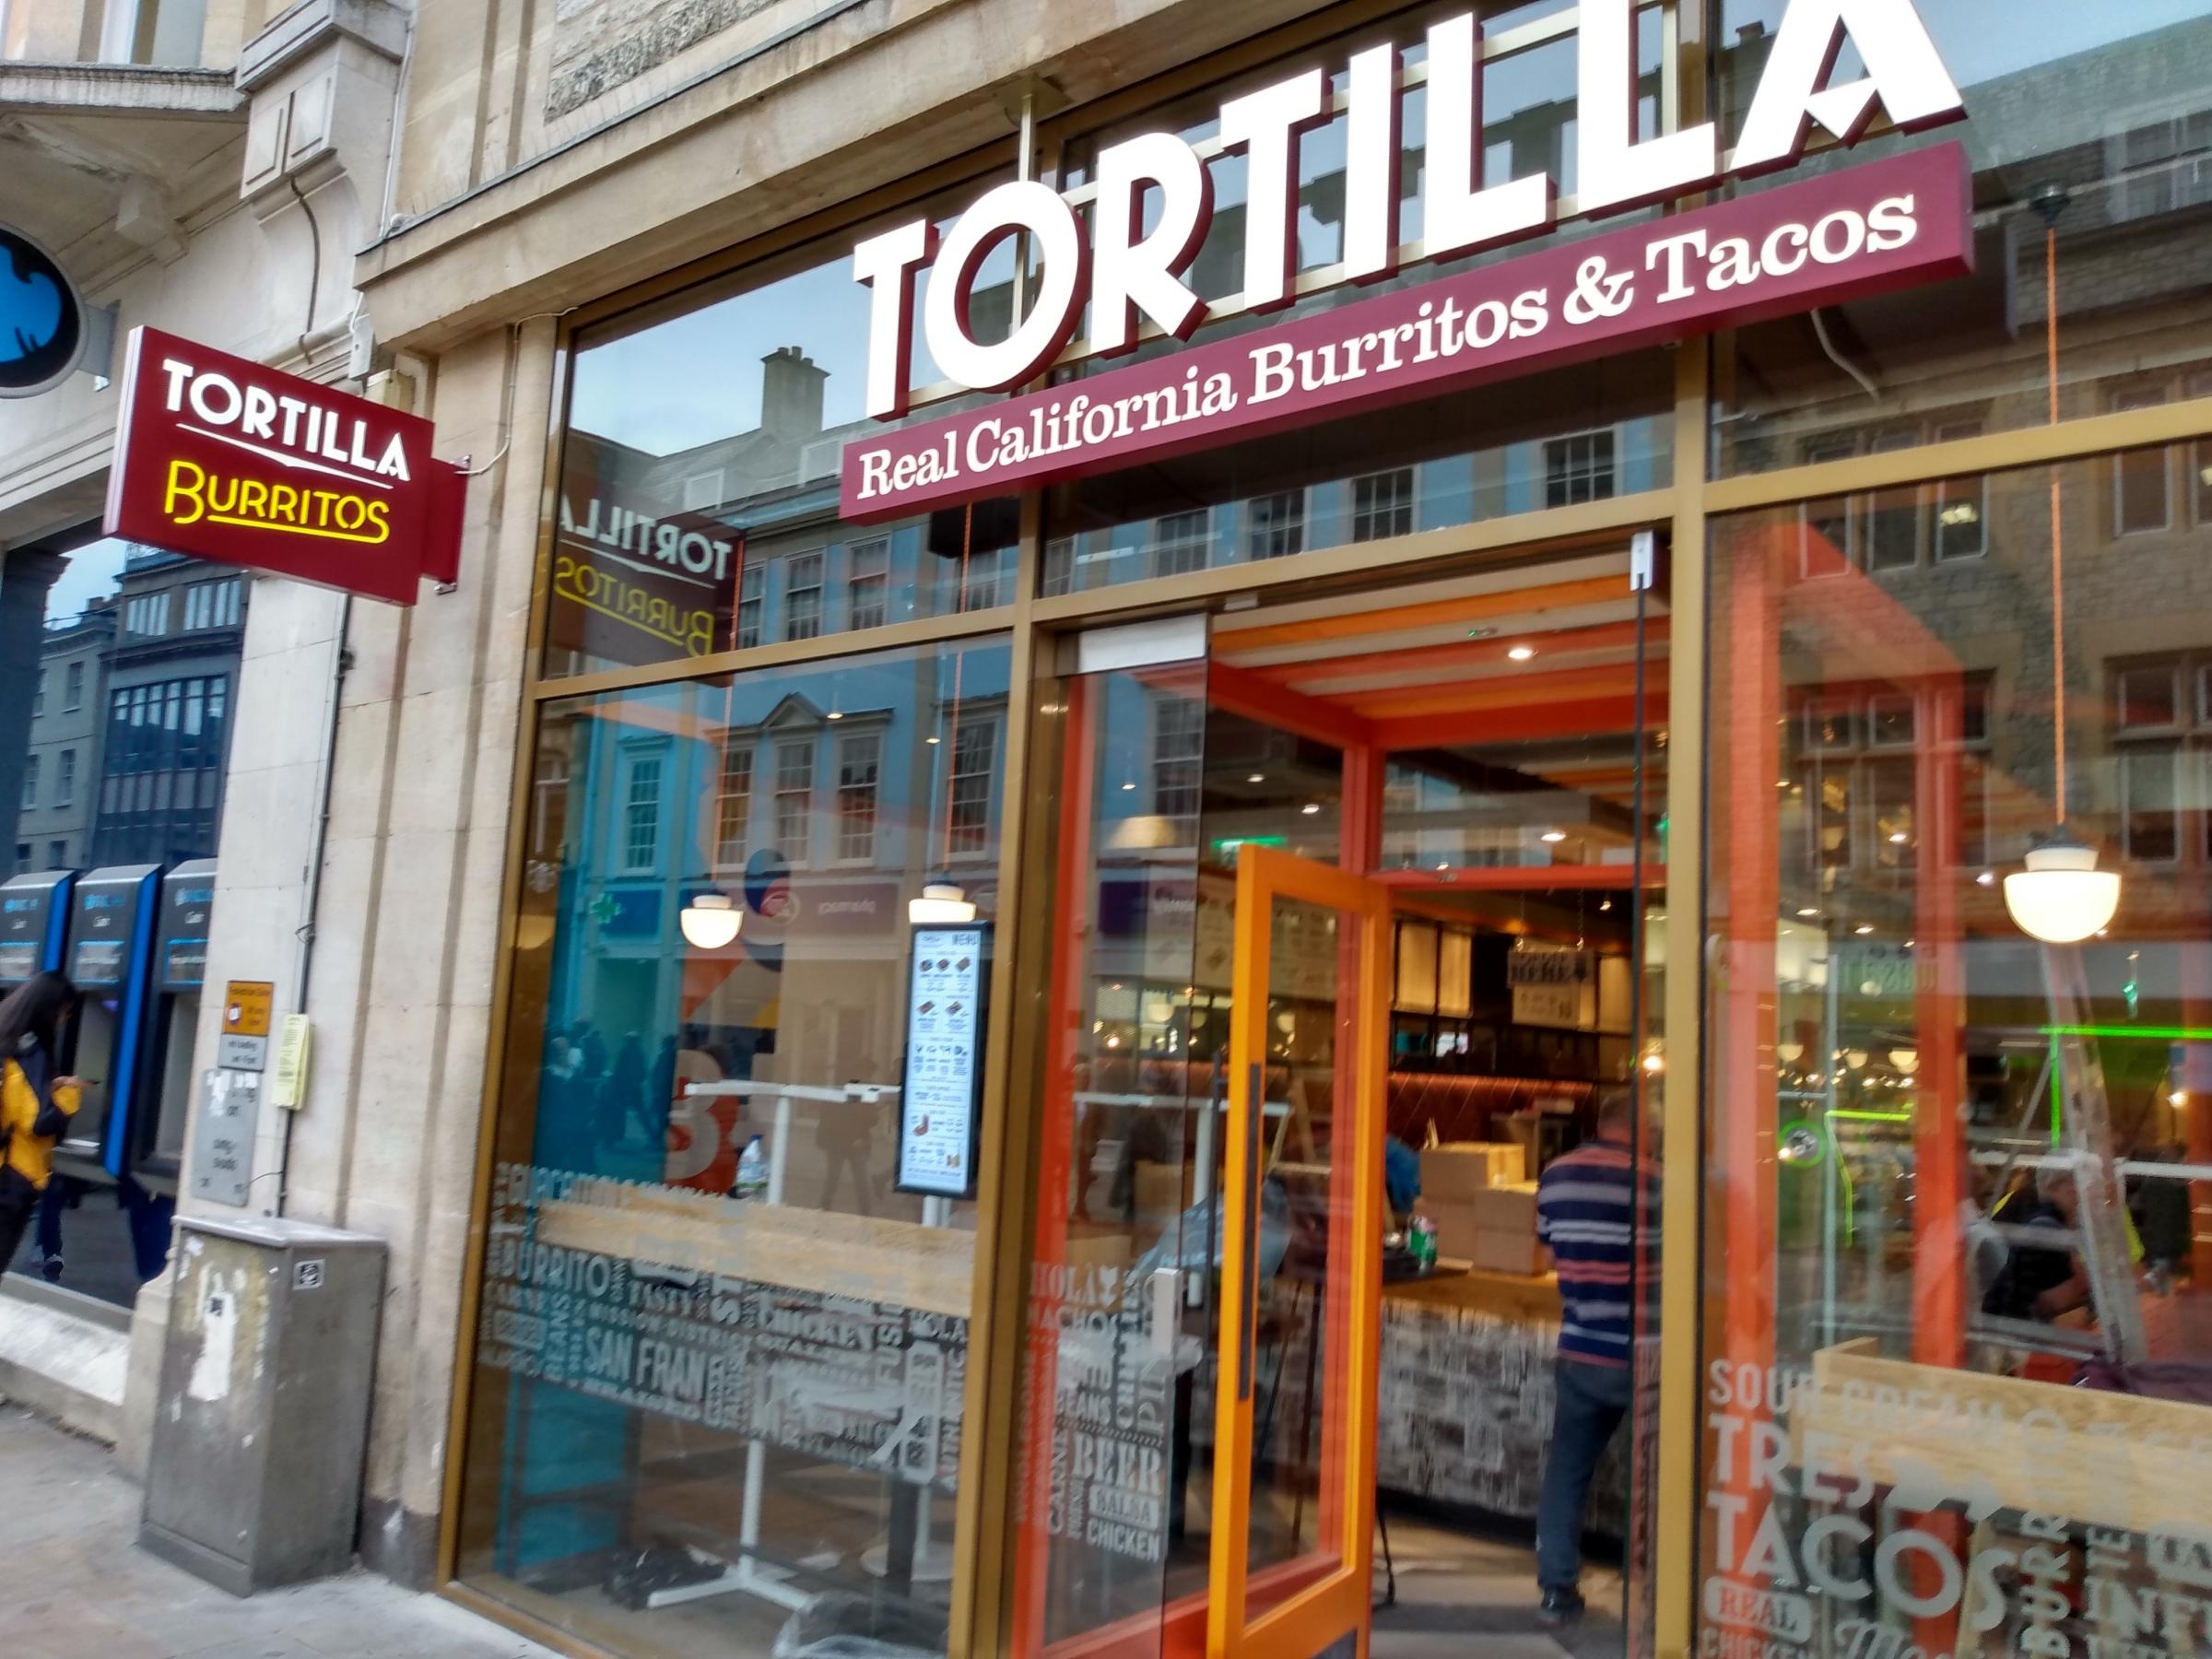 Fancy a free burrito? Try out Tortilla